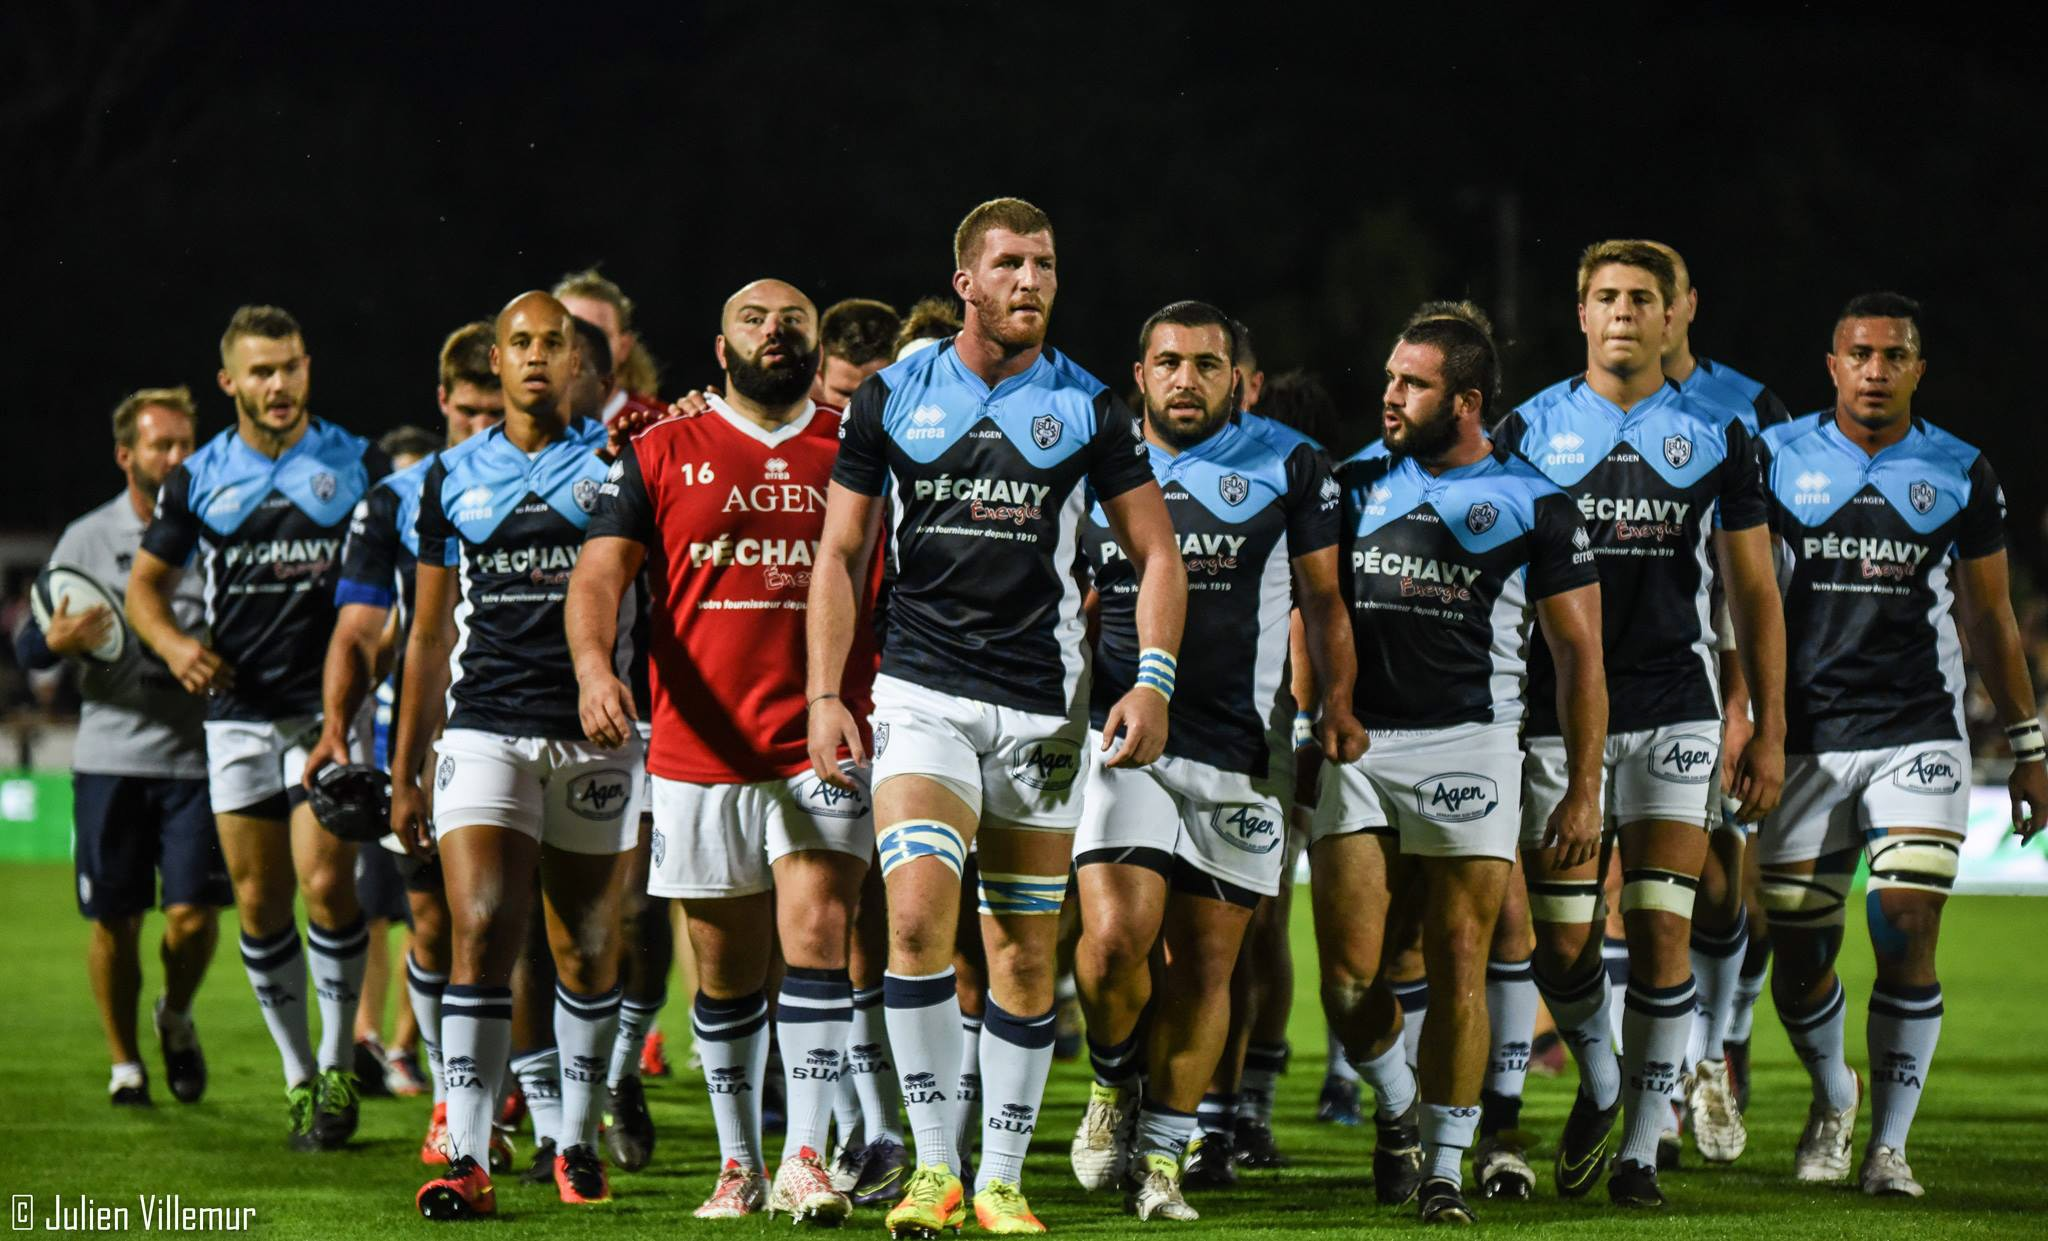 Agen Rugby tops the table!